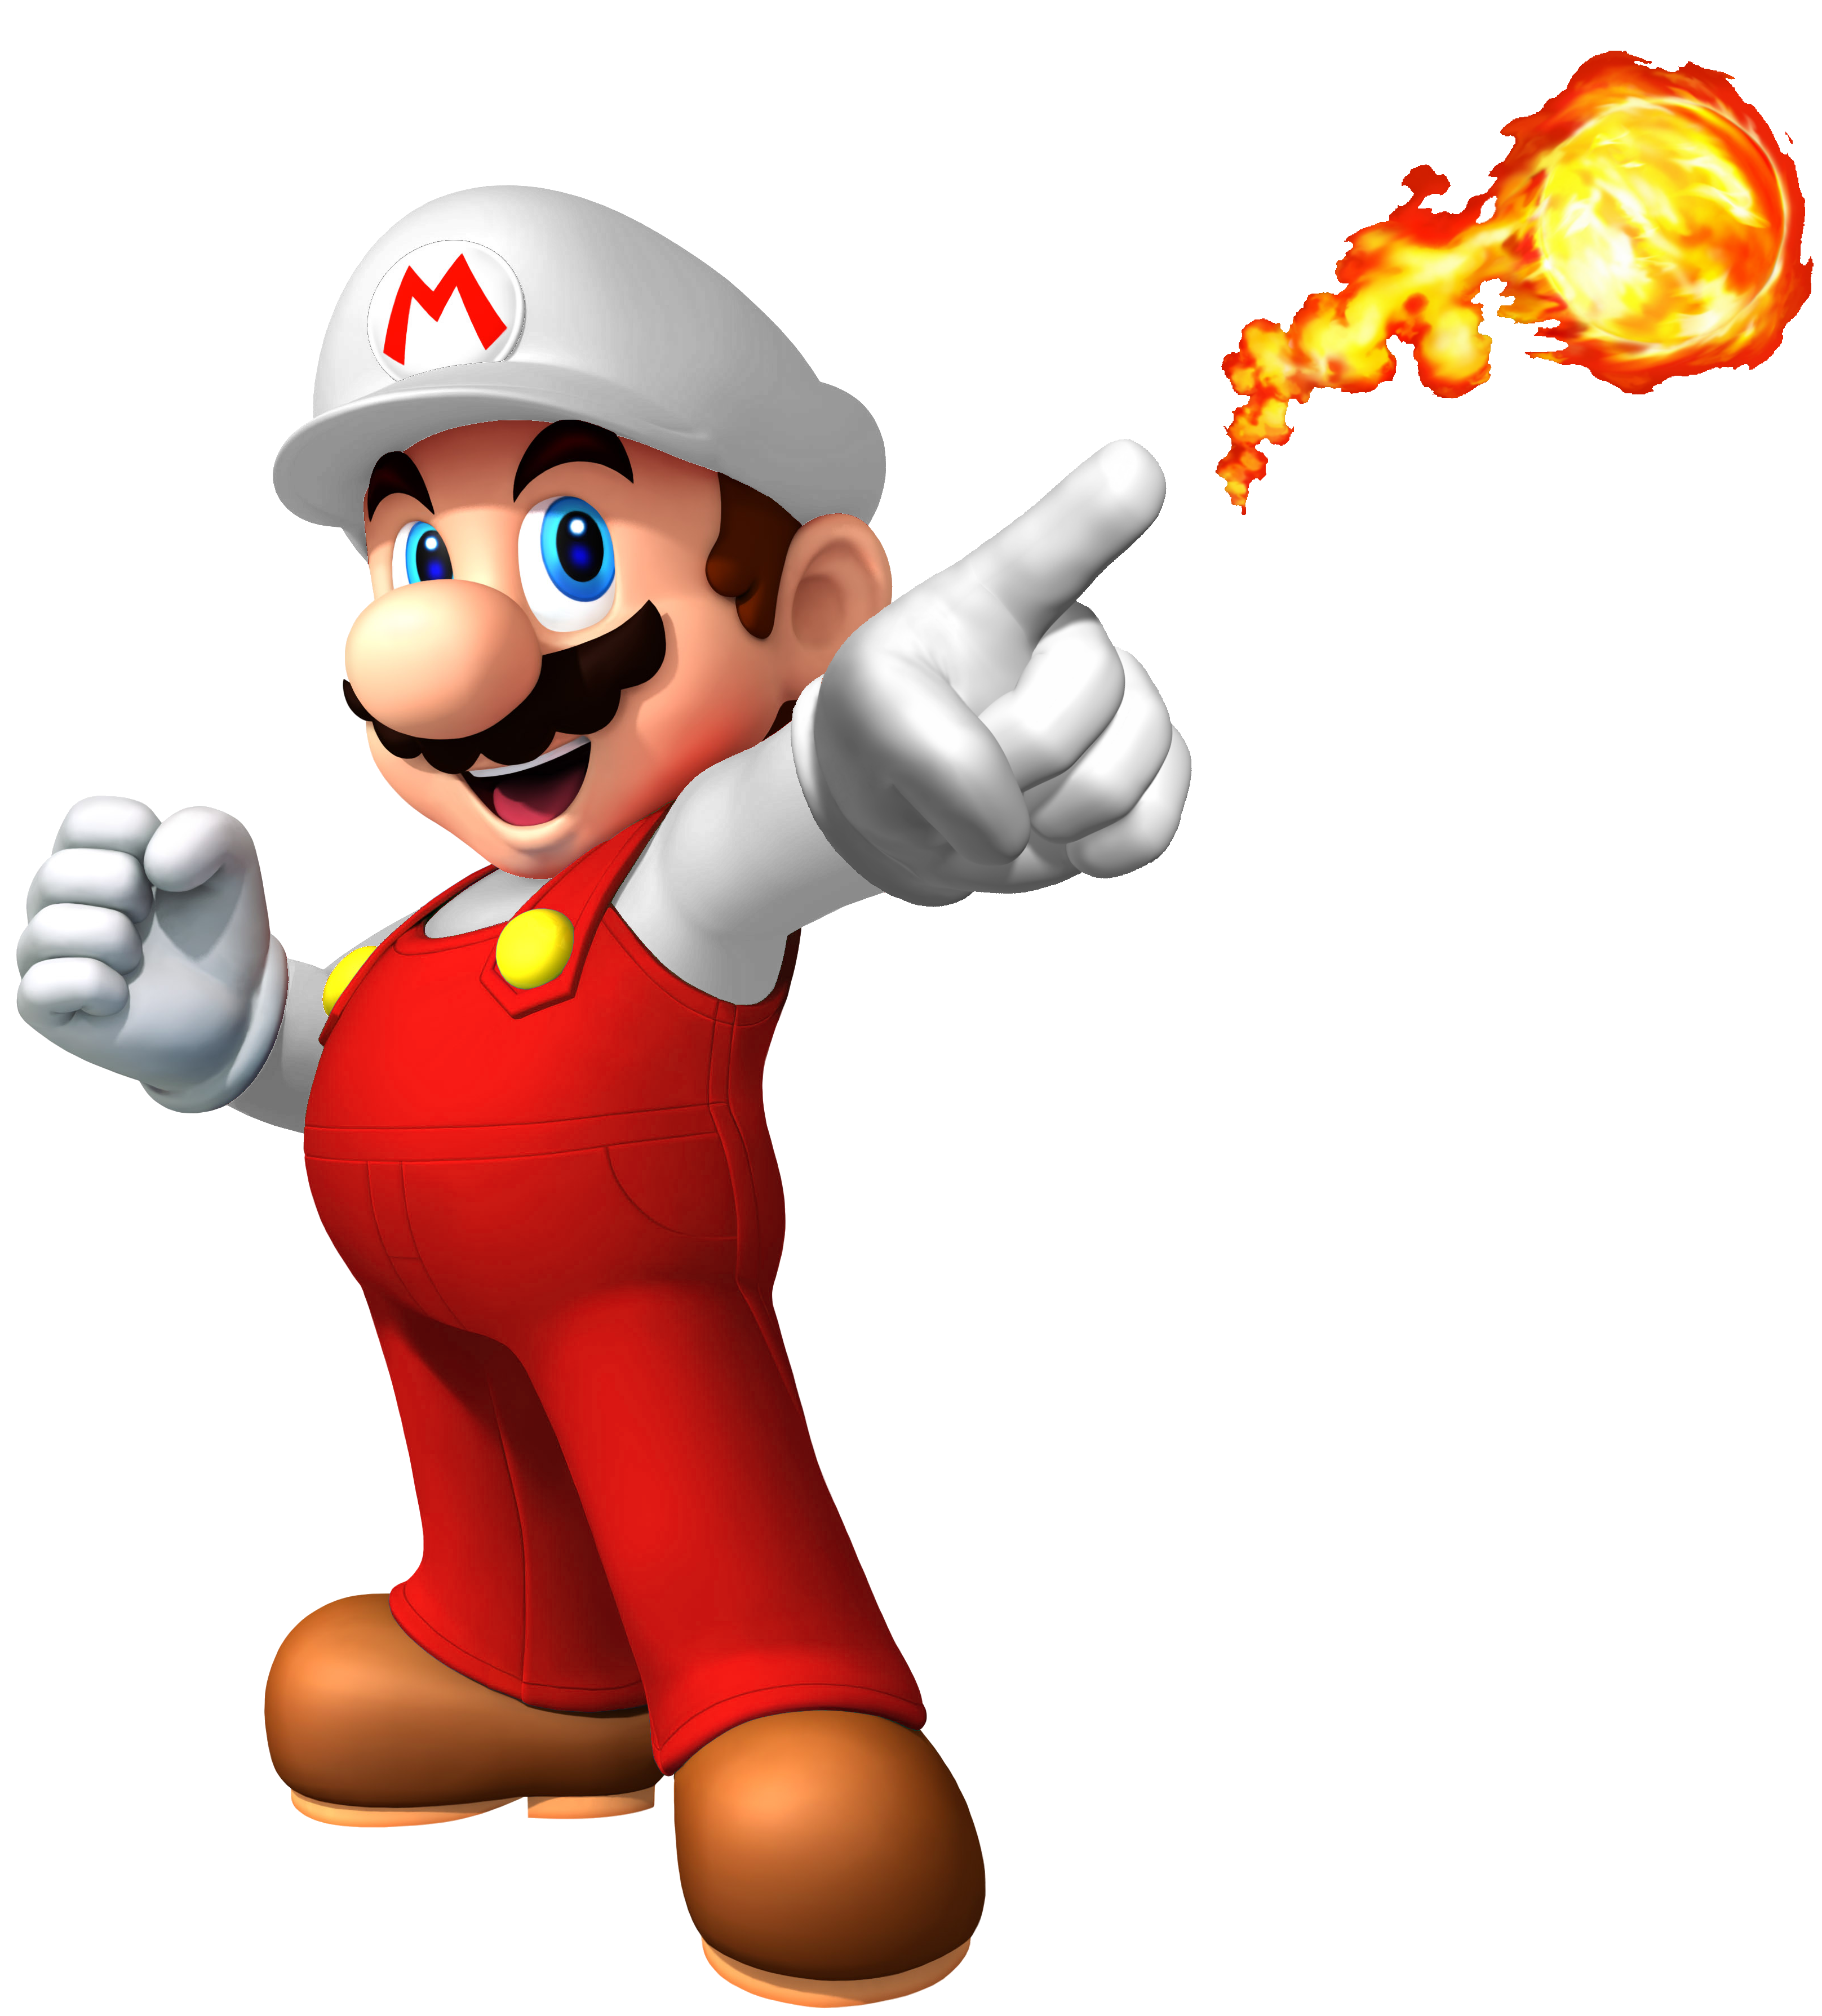 Super fire png image. Mario clipart icon